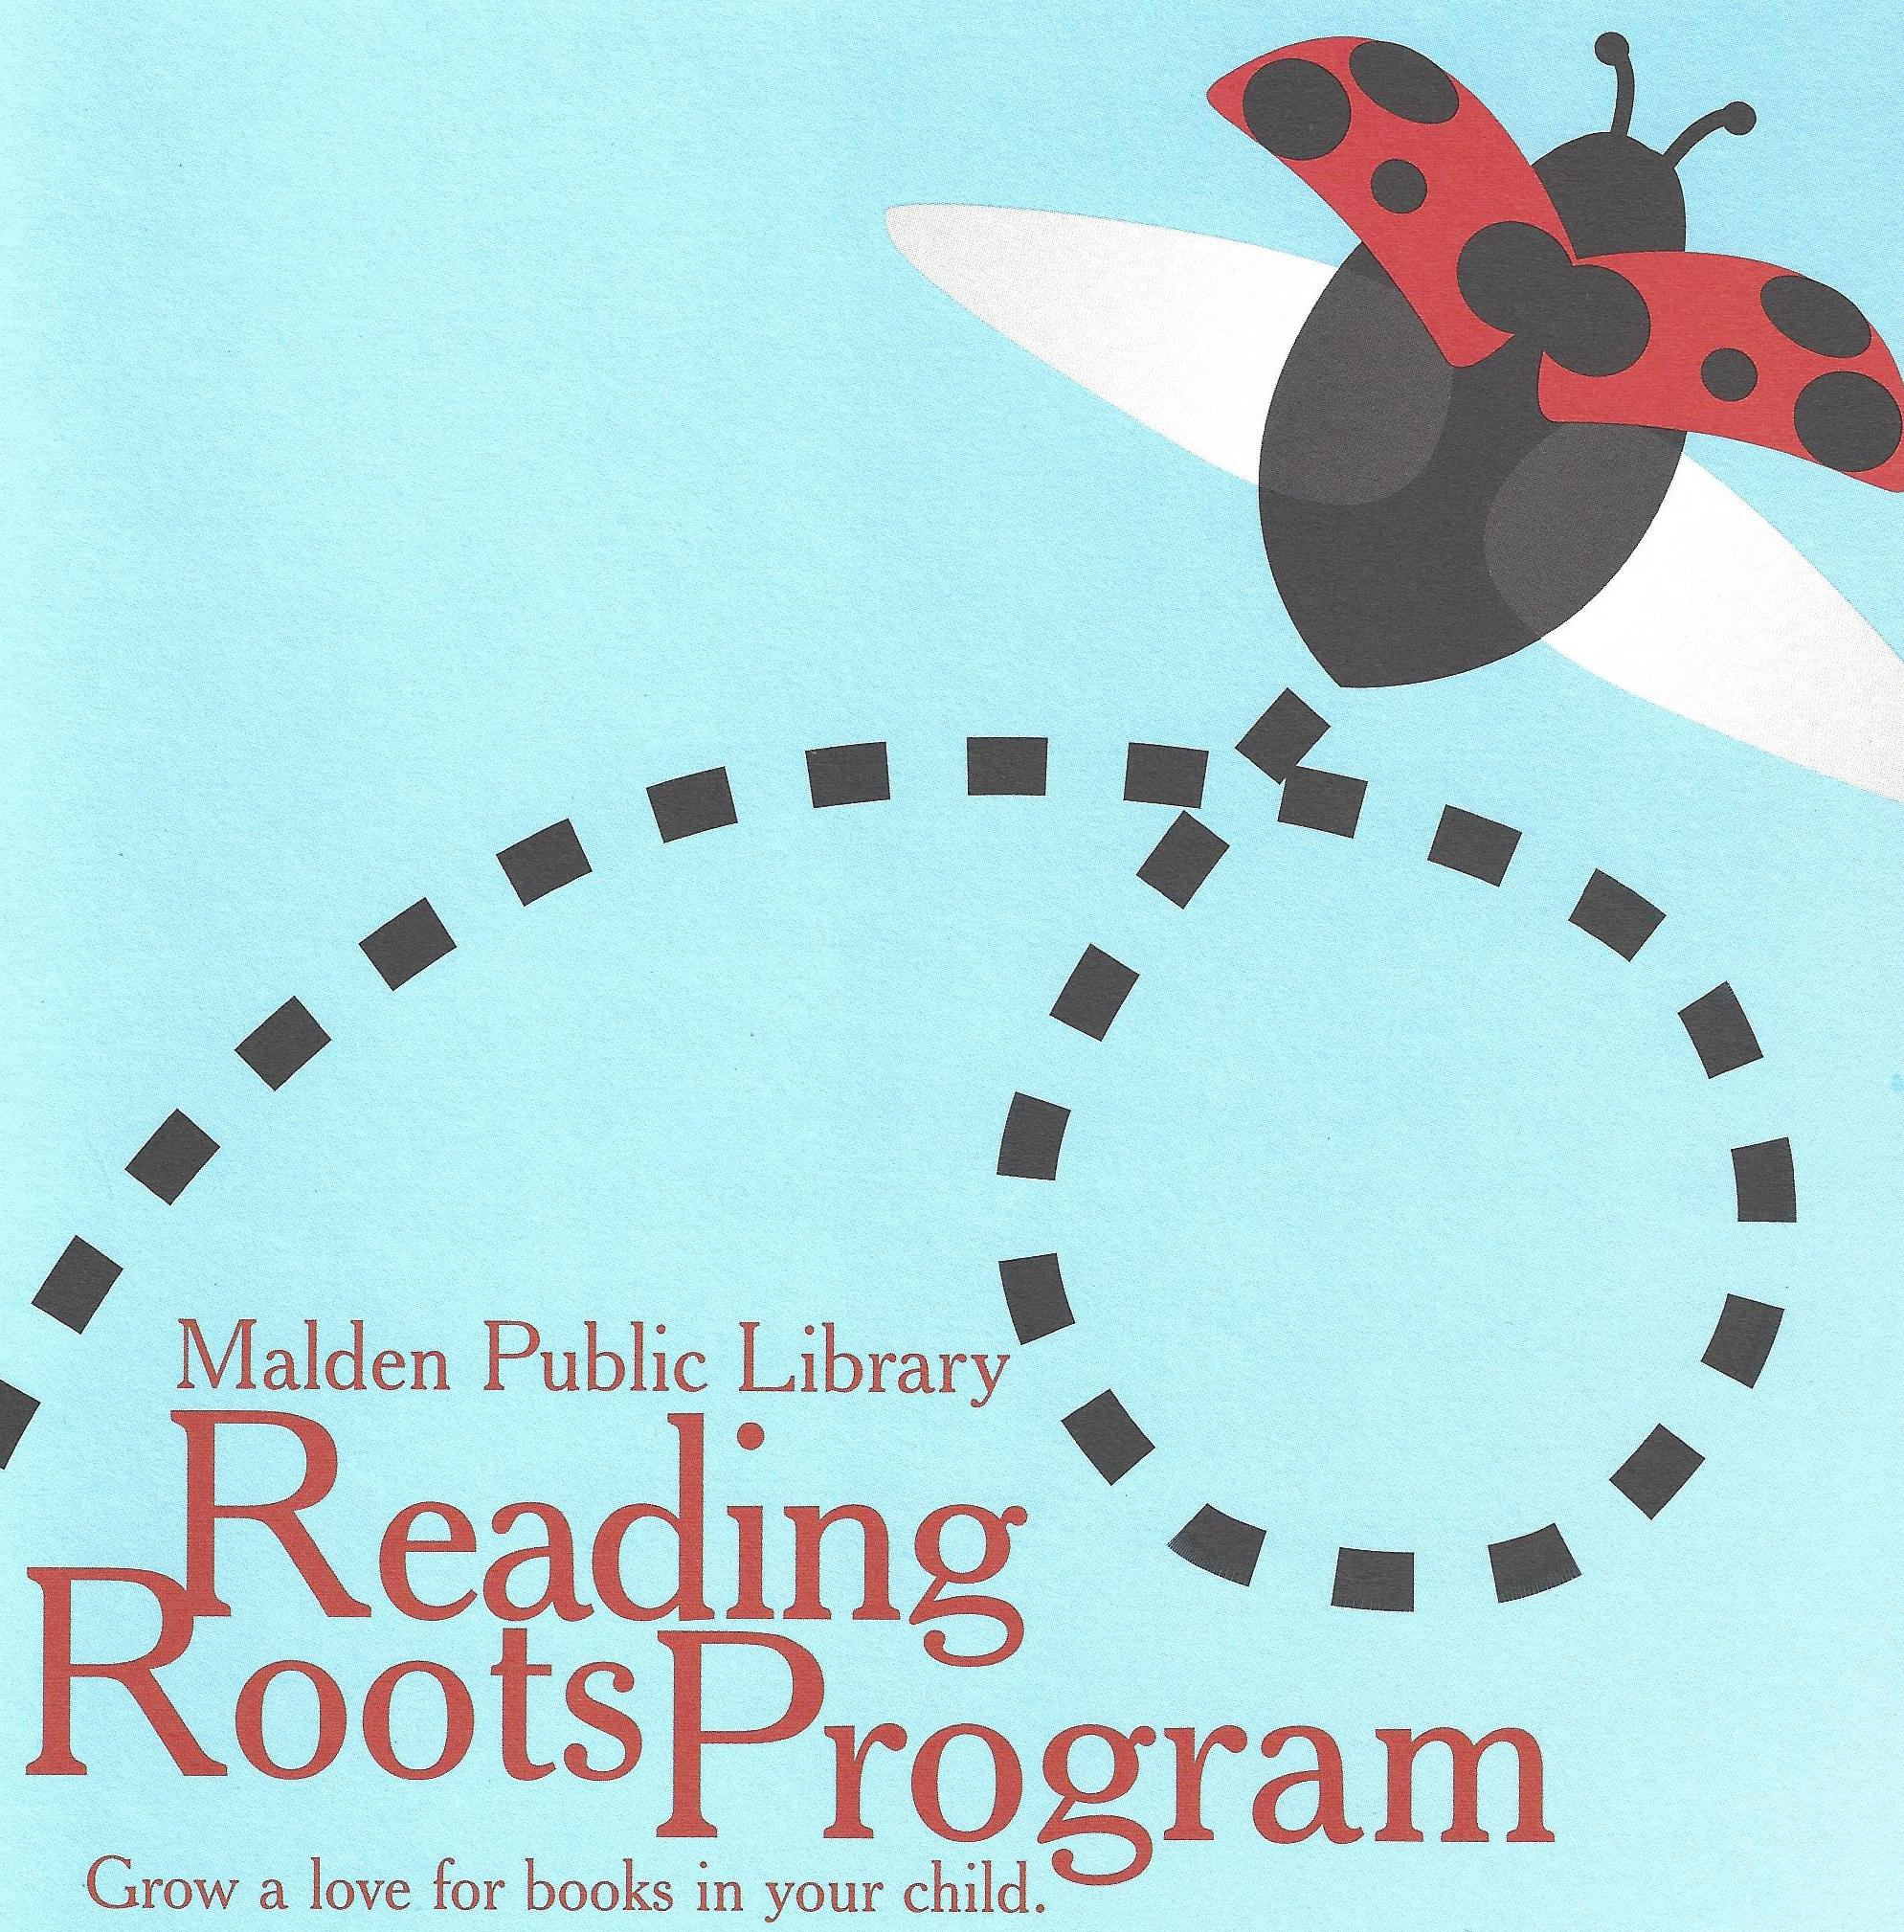 Reading Roots booklet cover